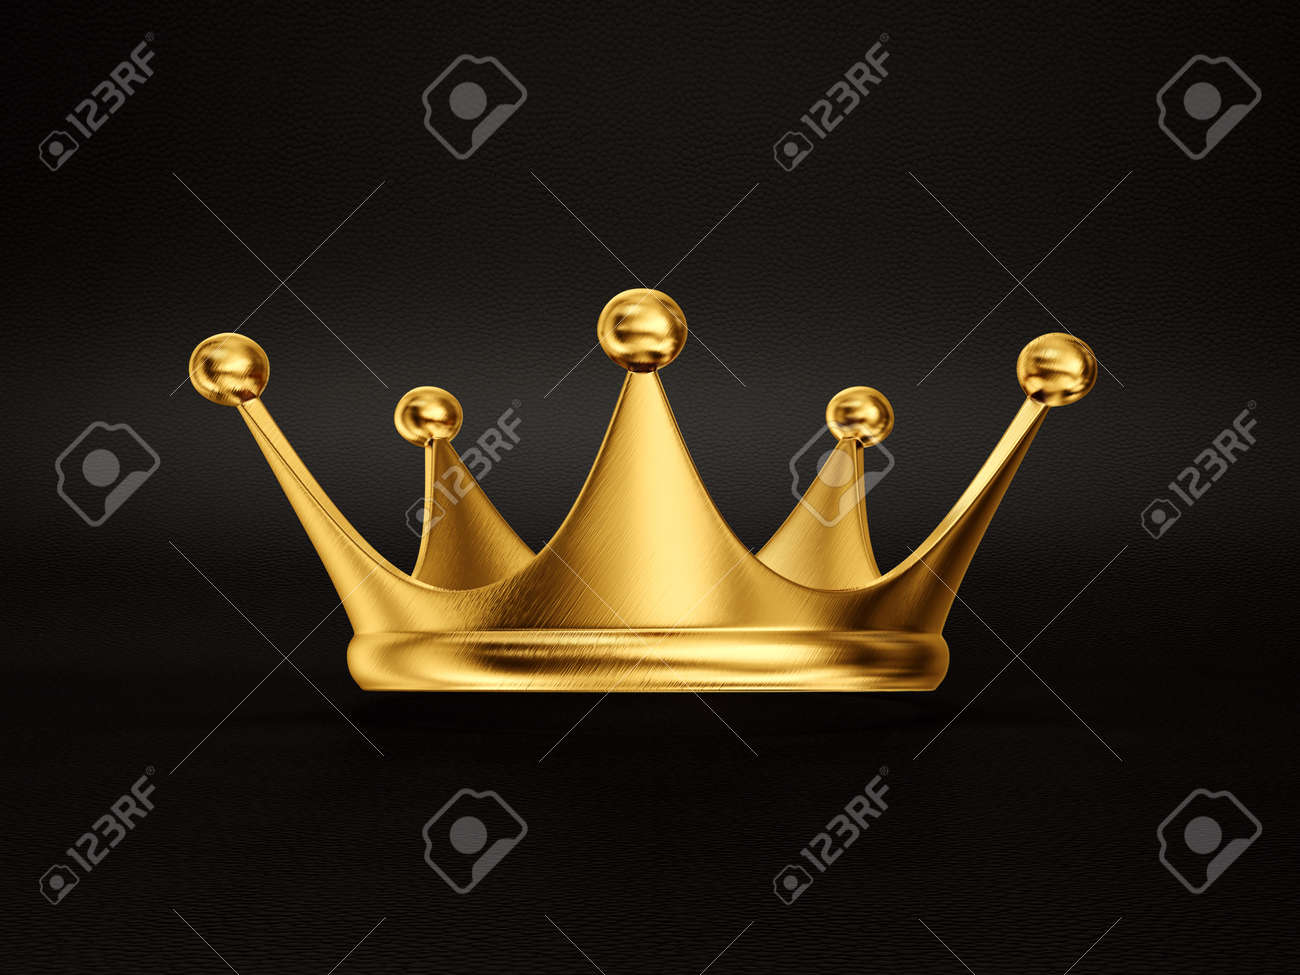 gold crown isolated on a black background - 32774079